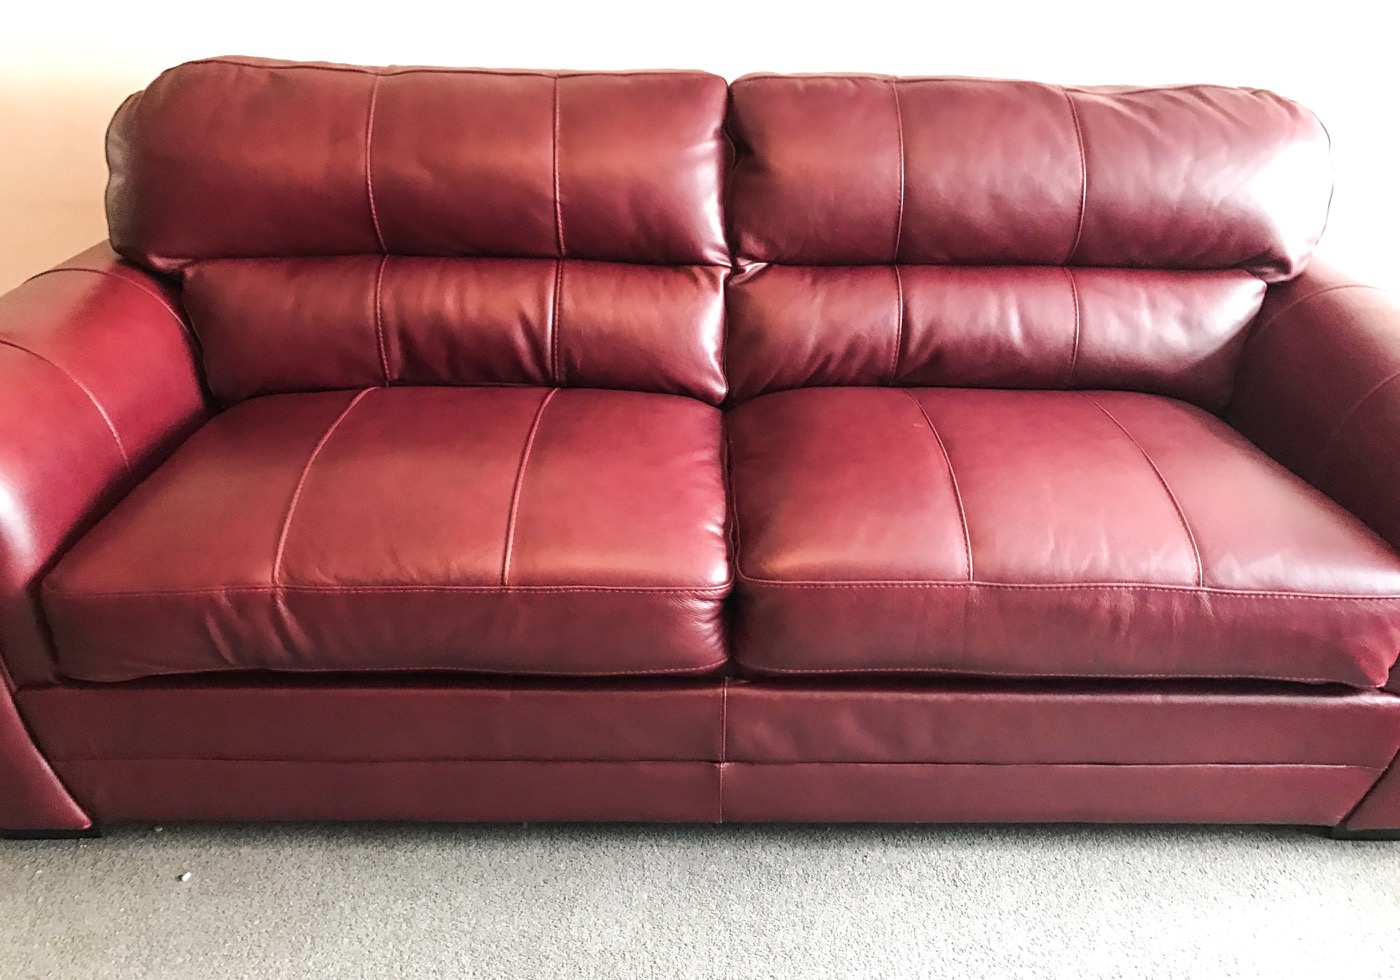 Red Leather Cushion Refilling Repair